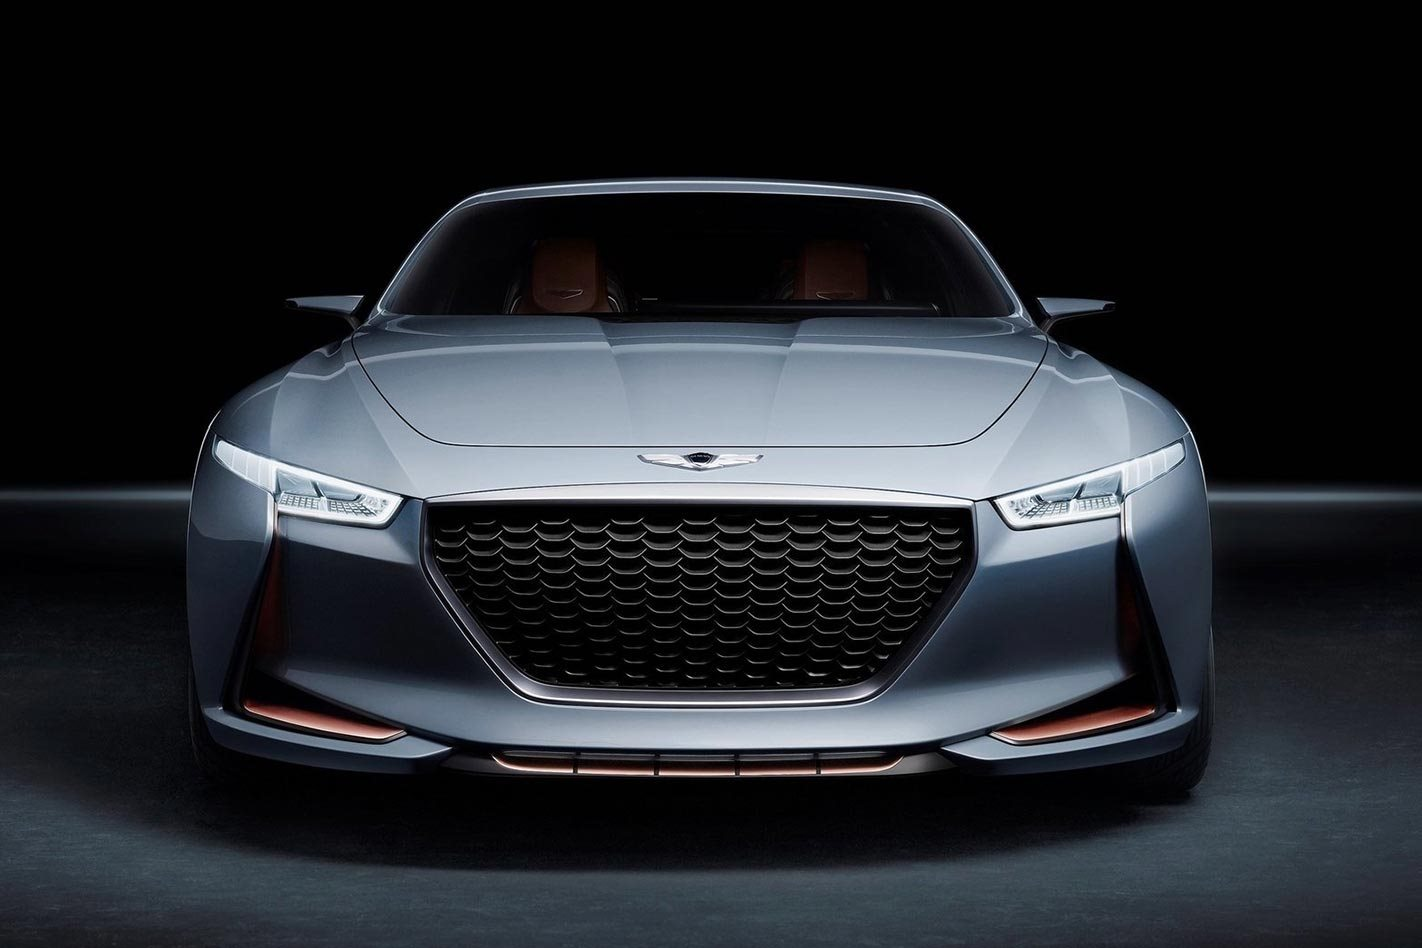 rear drive twin turbo hyundai genesis g70 announced. Black Bedroom Furniture Sets. Home Design Ideas